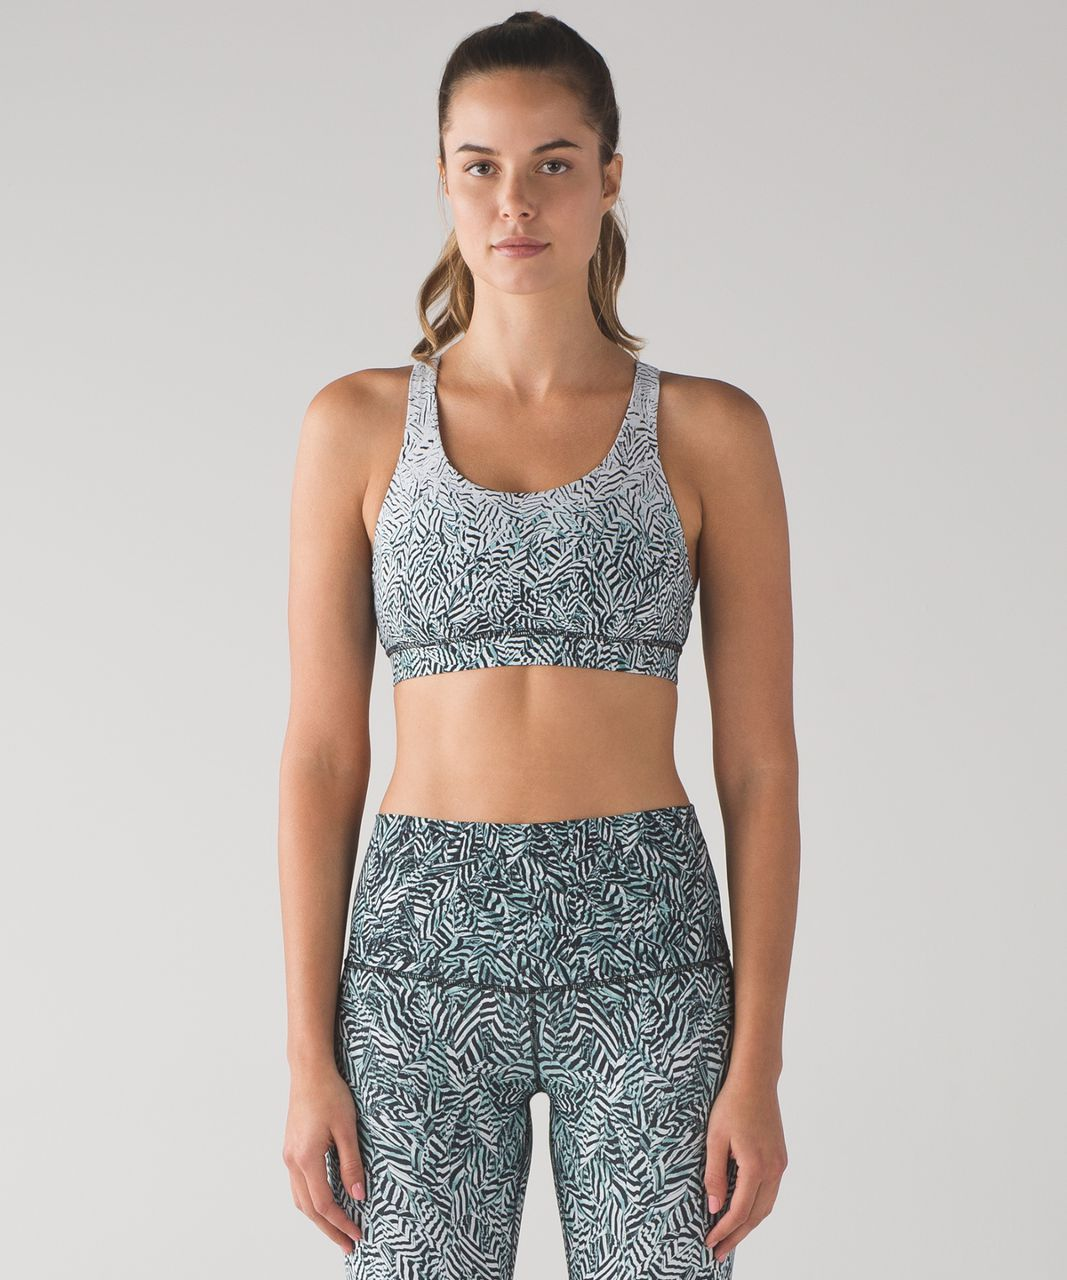 Lululemon Energy Bra (Nulux) - Dazzle Energy Bra 50g Alpine White Black